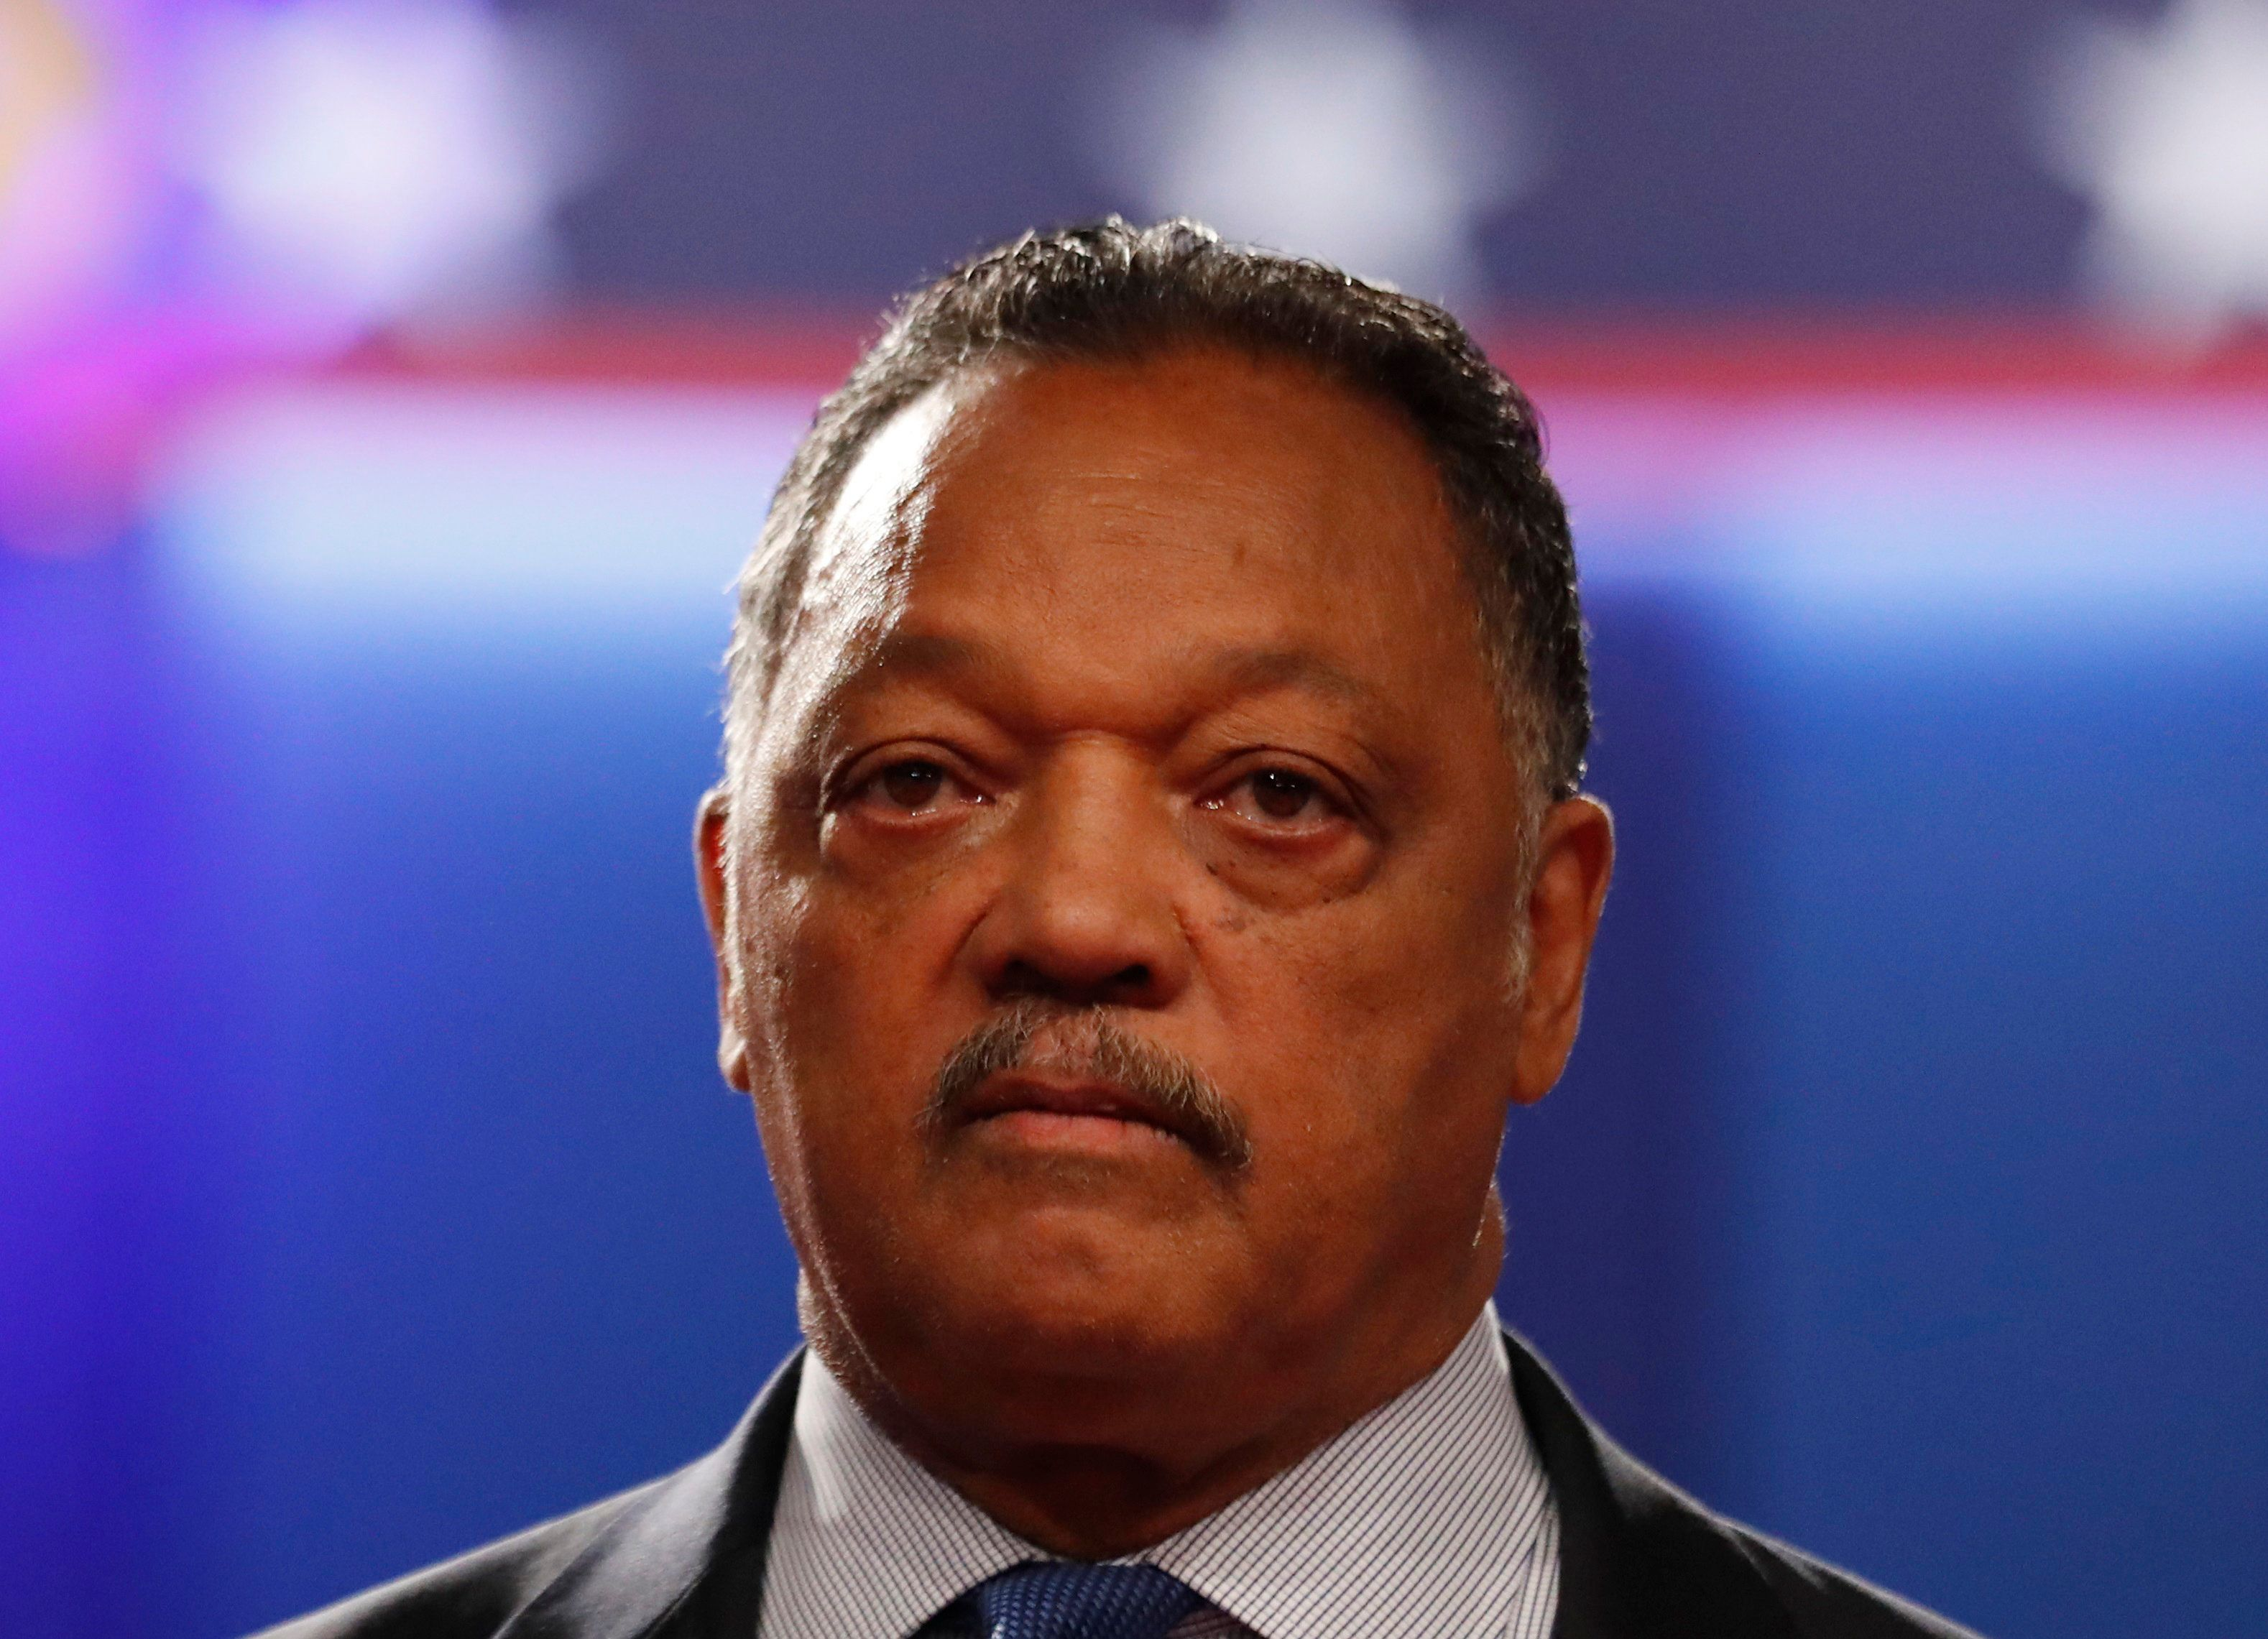 Jesse Jackson arrives to attend the  third and final 2016 presidential campaign debate between Republican U.S. presidential nominee Donald Trump and Democratic nominee Hillary Clinton at UNLV in Las Vegas, Nevada, U.S., October 19, 2016. REUTERS/Mike Blake